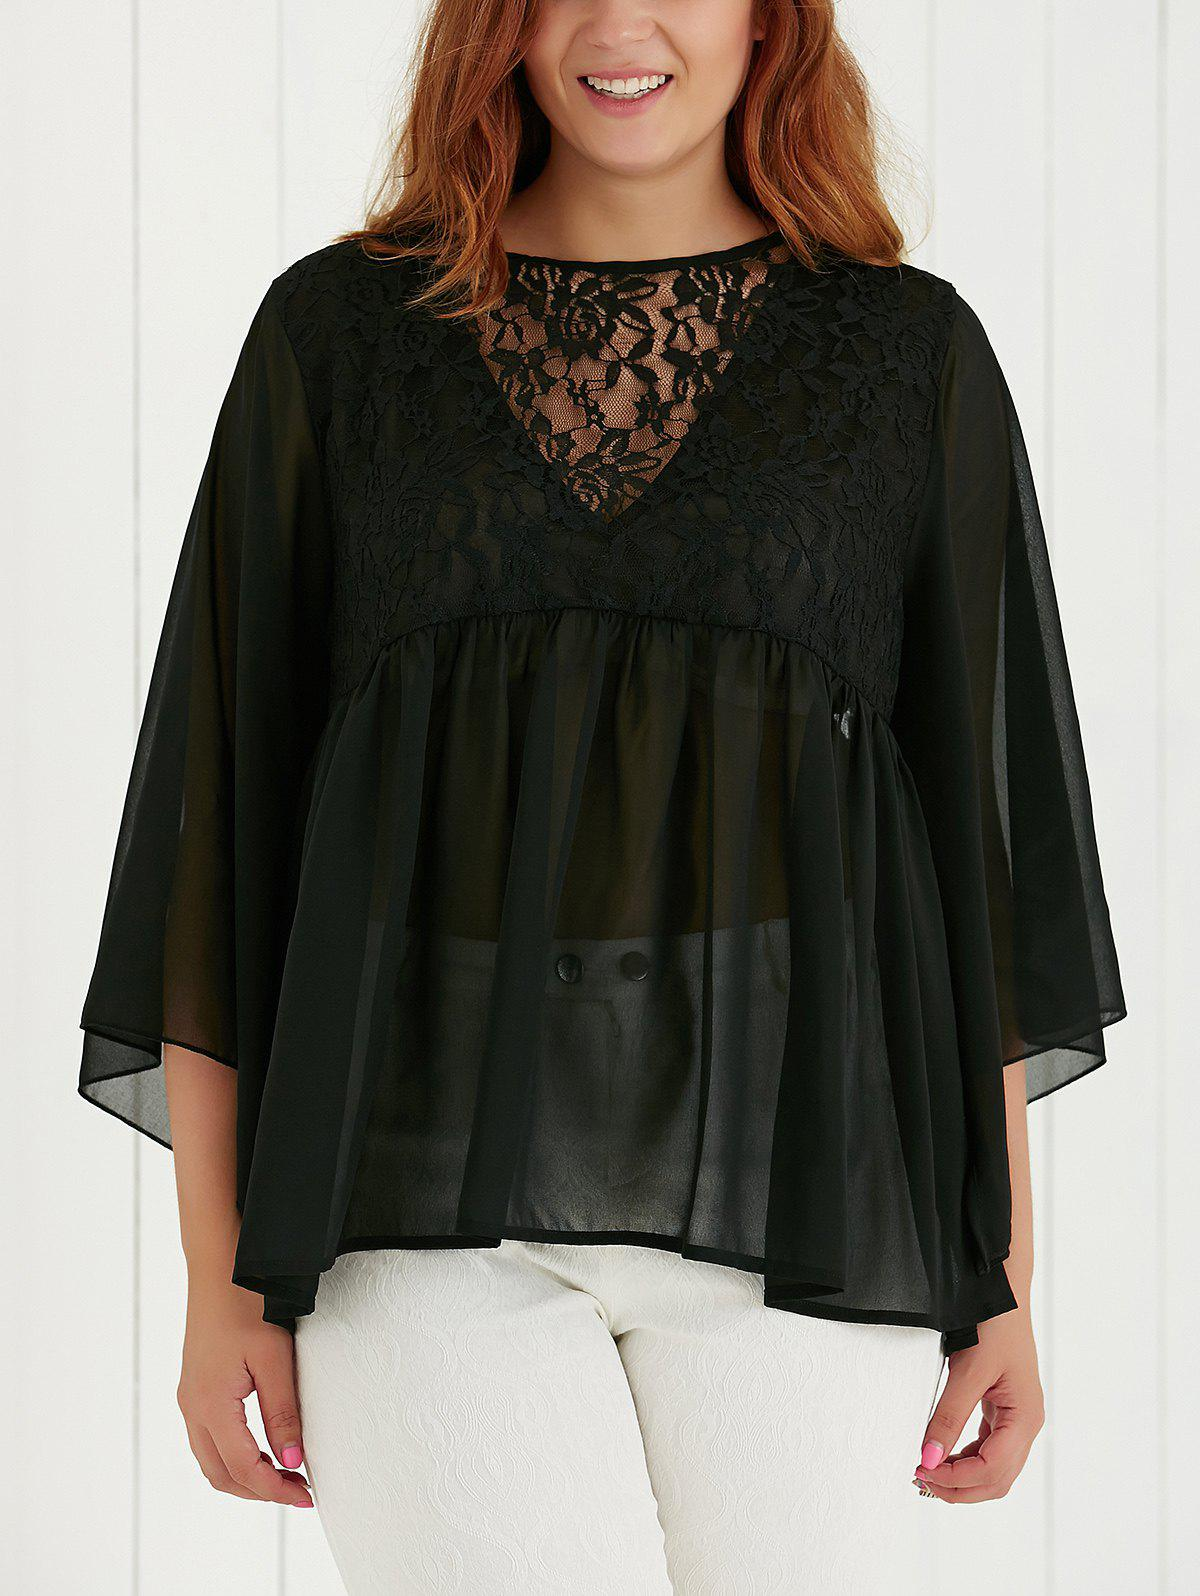 Malaysia online boutique for Plus Size Women from XL to 7XL | UK14 up to UK We have all range of plus size clothing in modern and modest design from T-shirt, plus size pants, plus size active wear to pyjamas and underwear.